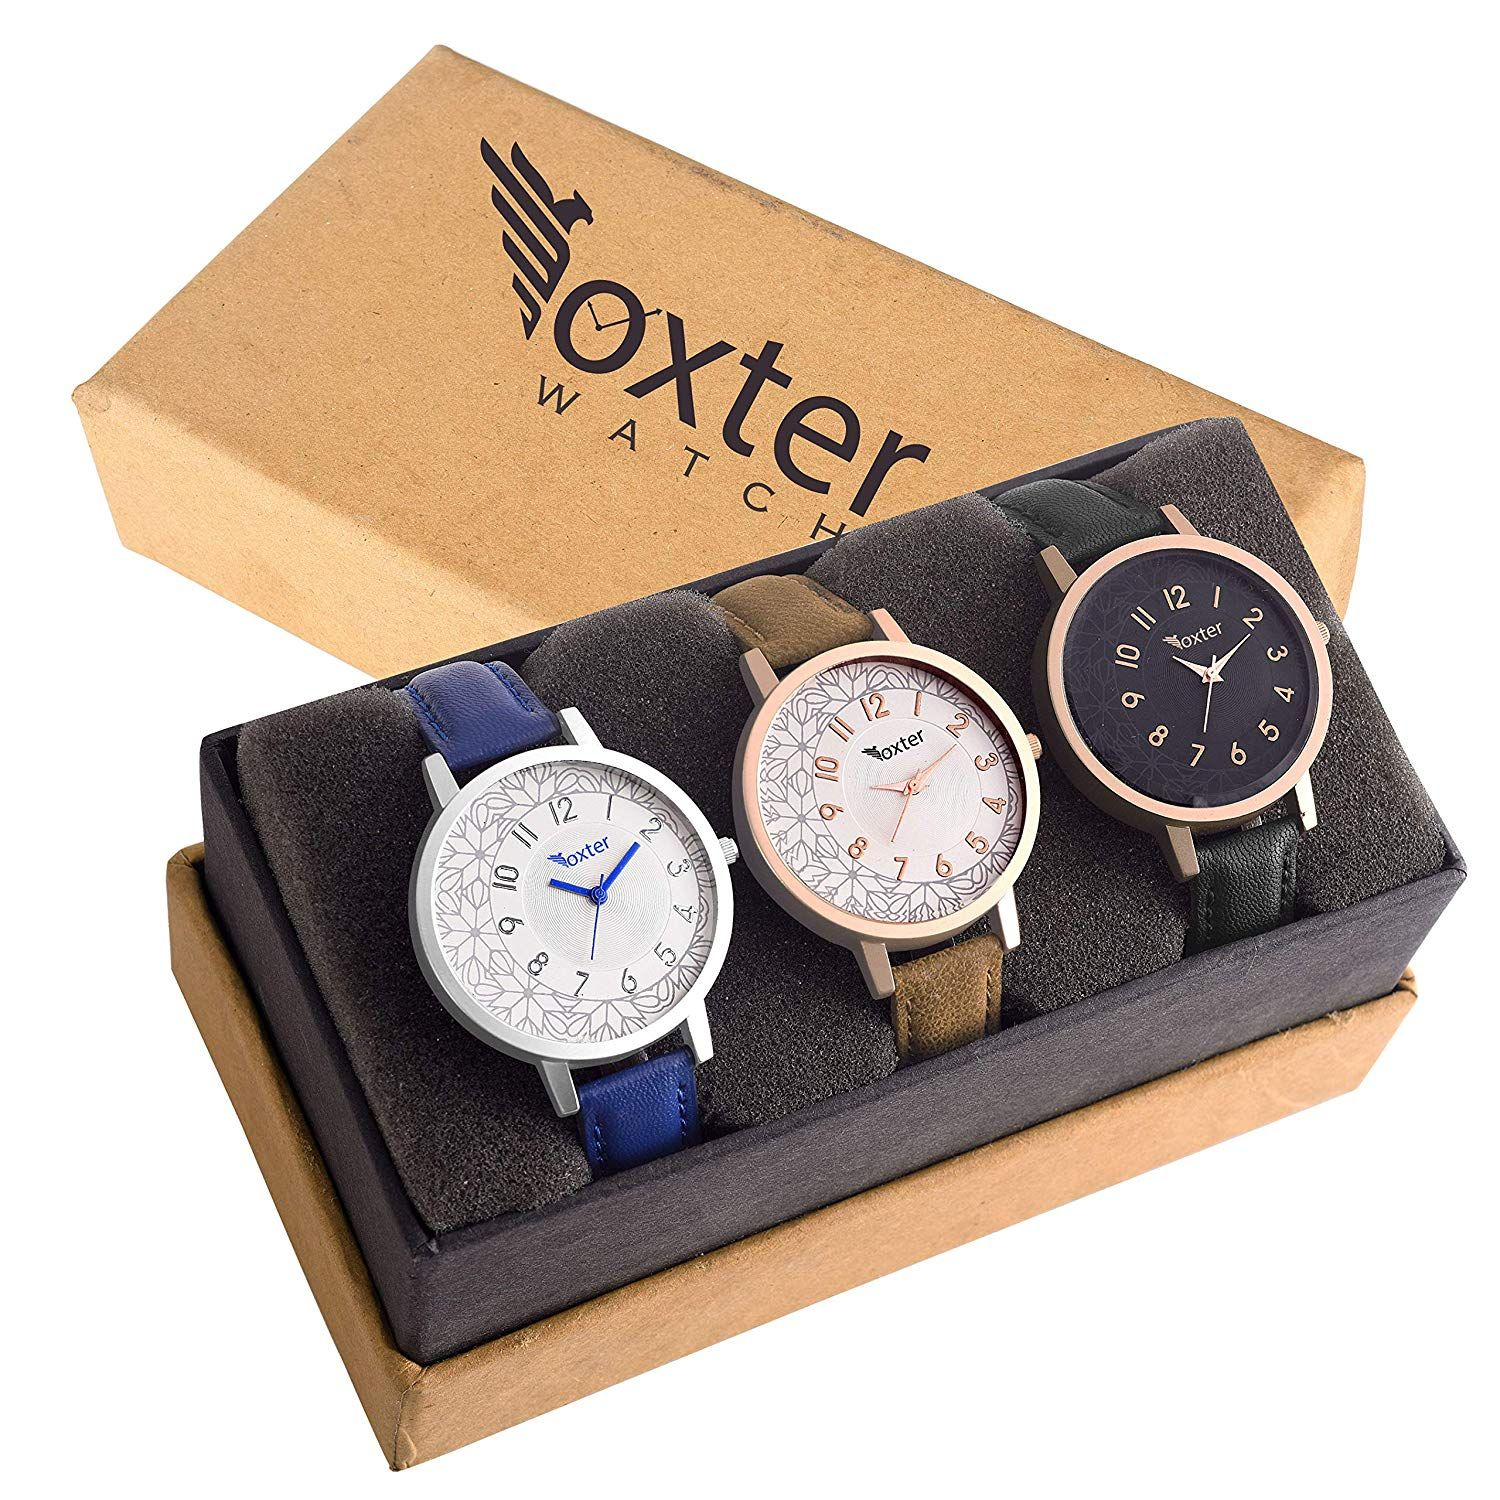 36788f4bd ONLY 499 rs Foxter Analogue Display Dial Women's Watches Pack of 3 #WWW-1